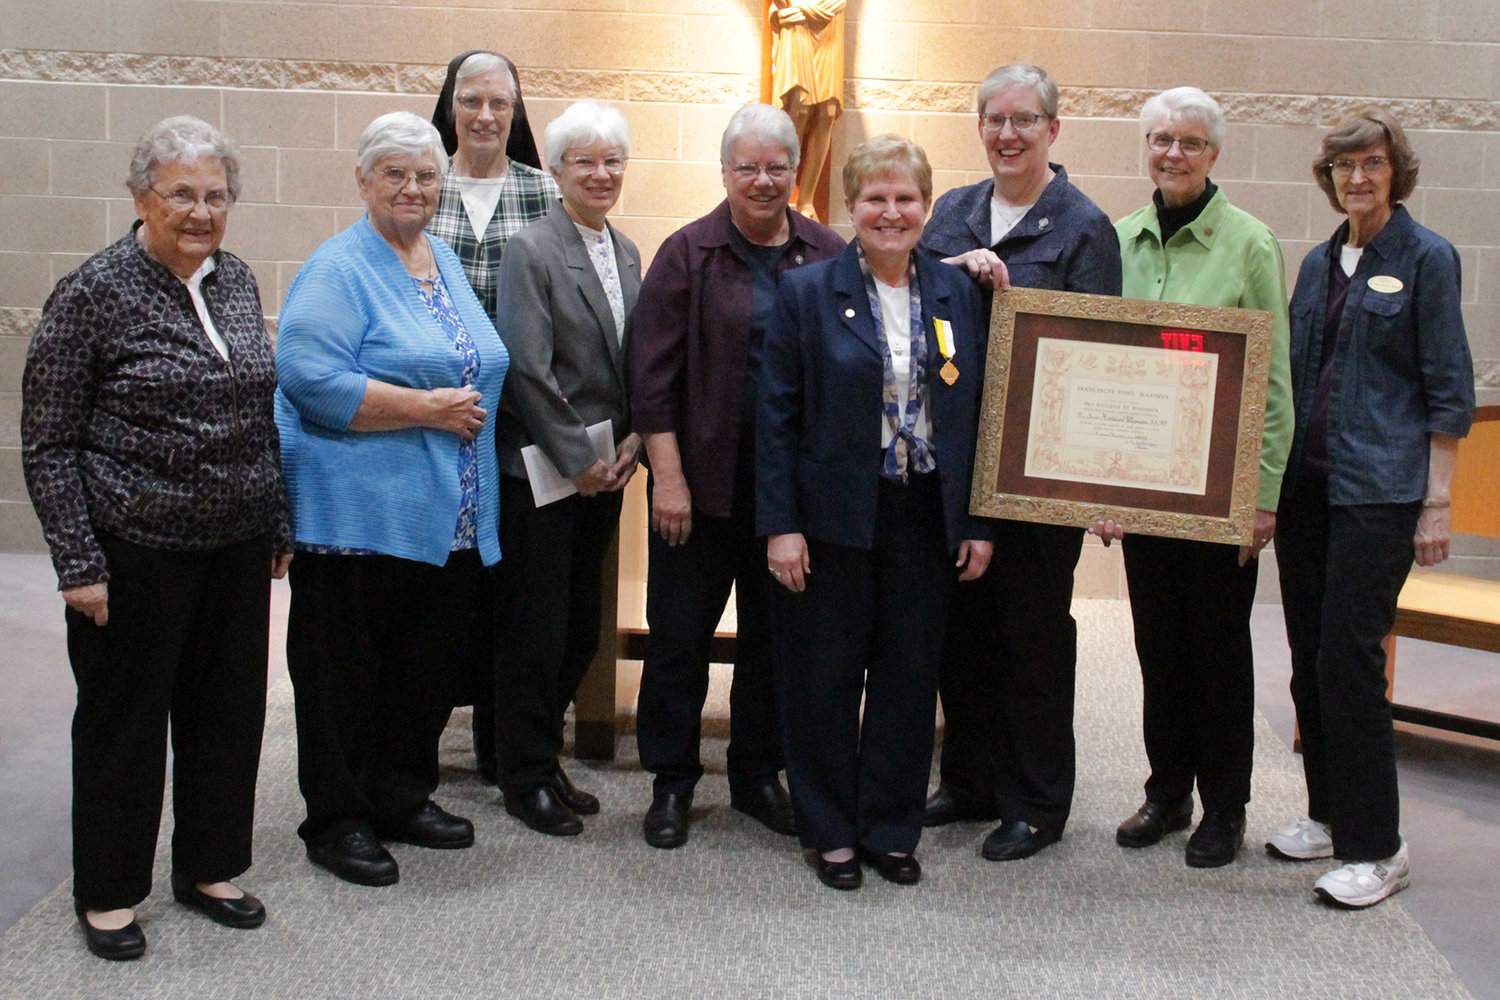 Sister Bernita Wasinger, Sister Anne Boessen, Sister Mary Ruth Wand, Sister Francine Koehler, Sister Jean Dietrich, Sister Julie Brandt, Sister Barbara Neist and Sister Mary Helen Stokes — who are all School Sisters of Notre Dame (SSNDs) — gather in the chapel of the Alphonse J. Schwartze Memorial Catholic Center in Jefferson City with Sister Kathleen Wegman SSND (fourth from right) at a celebration for her retirement from full-time ministry.